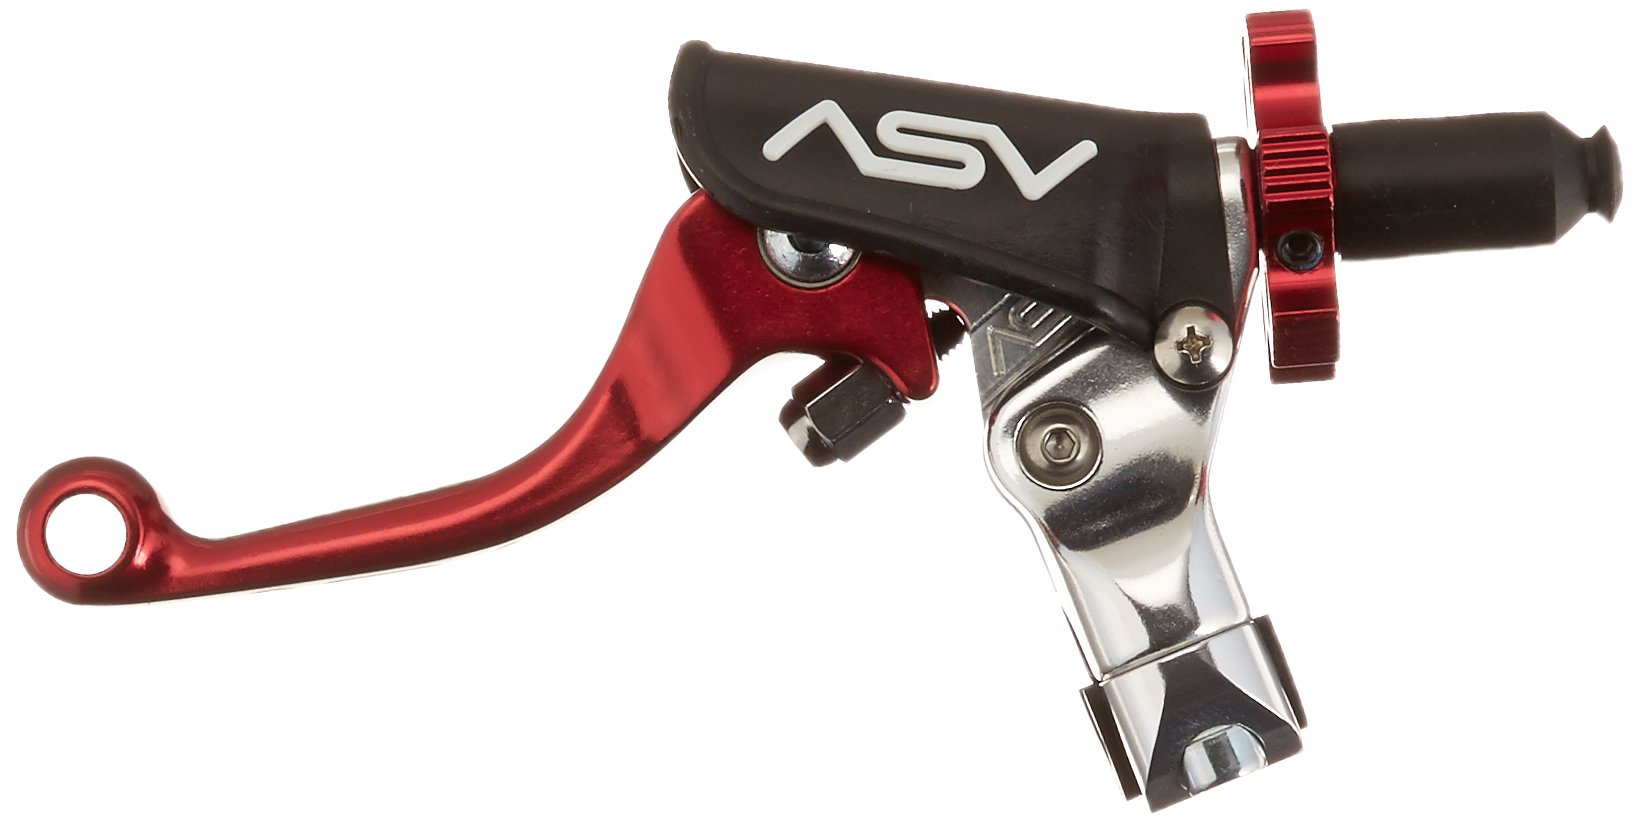 ASV Inventions CMF33-SR F3 Red Universal Pro Perch Shorty Clutch Lever by ASV Inventions (Image #2)